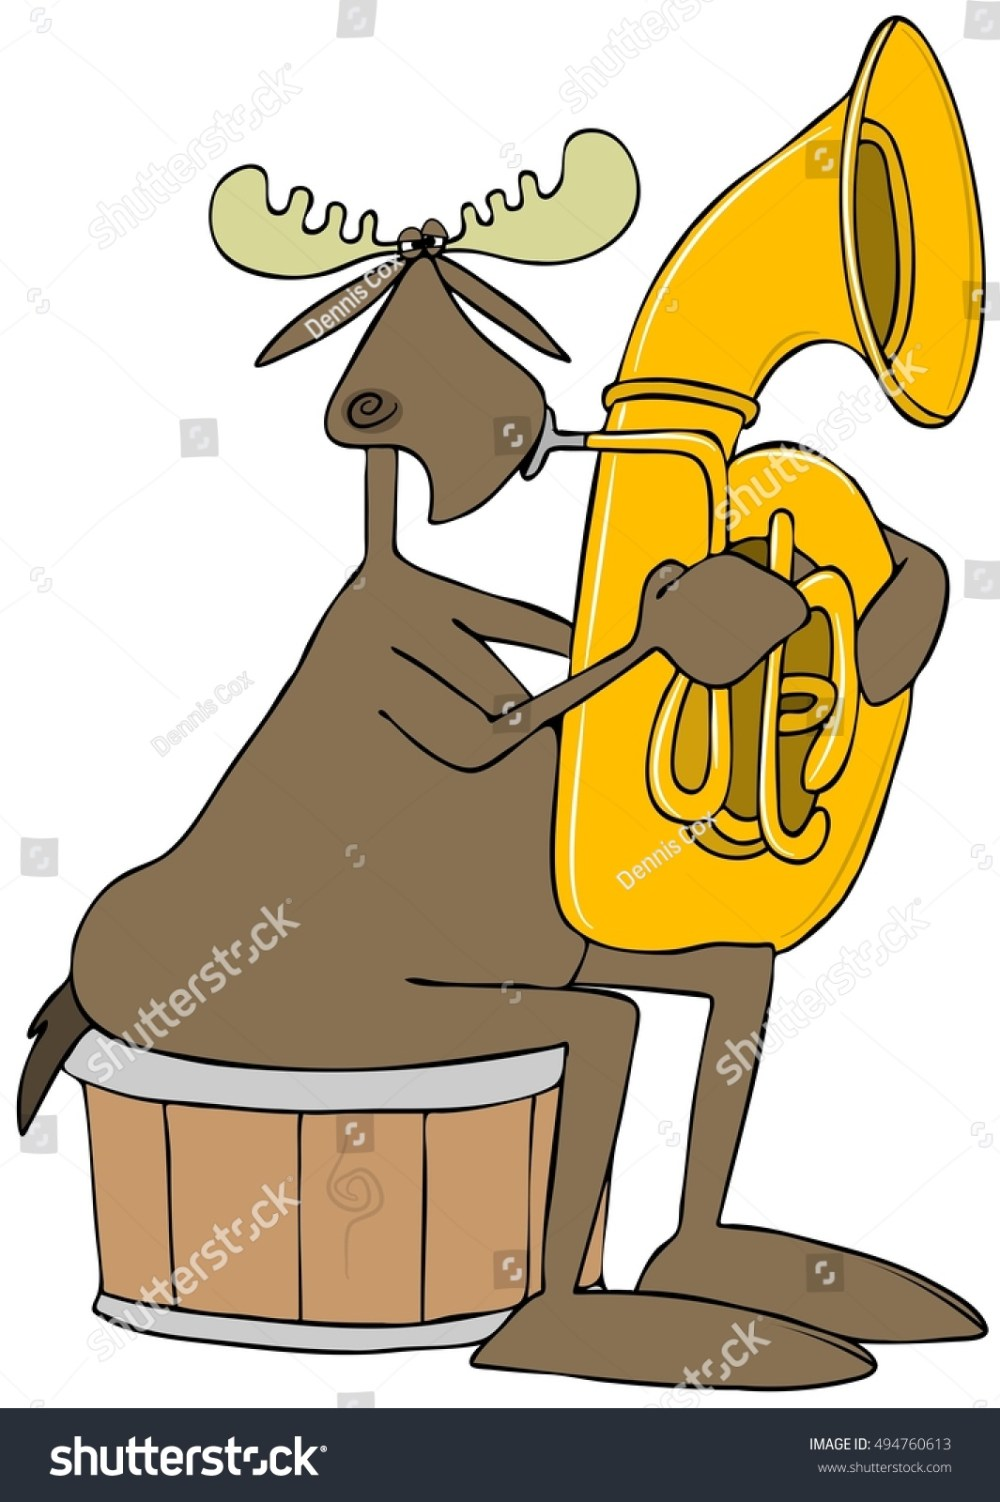 medium resolution of illustration of a bull moose sitting on a half barrel and playing a brass tuba